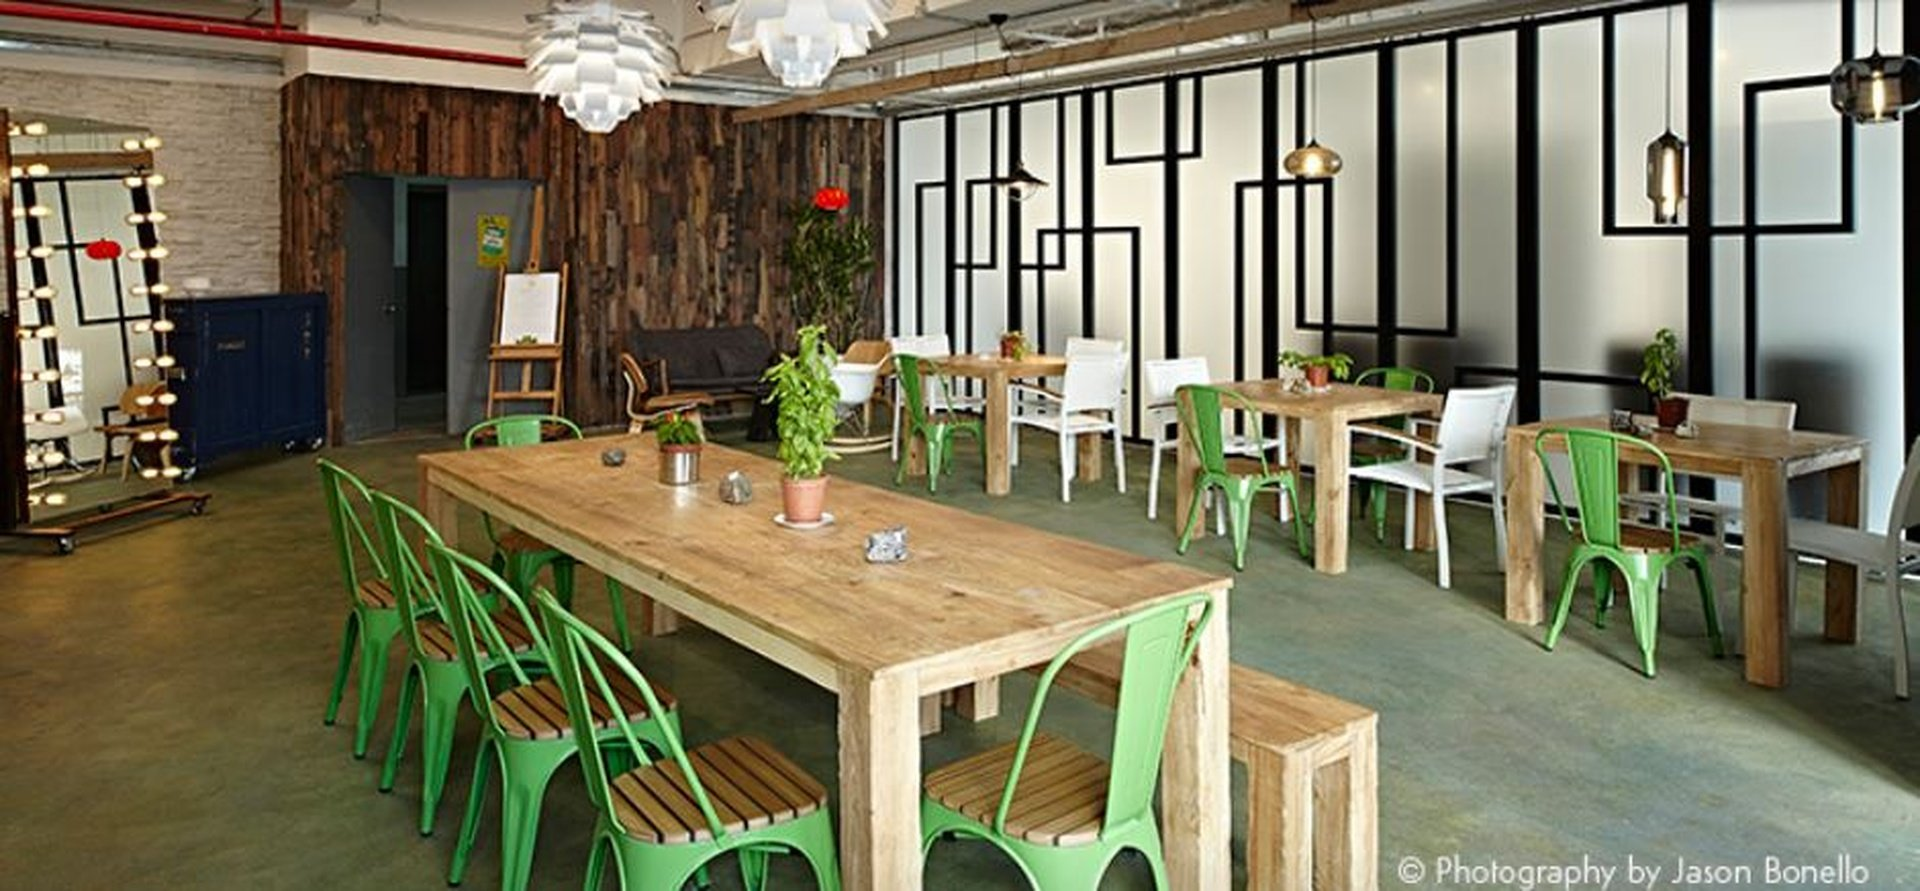 Hong Kong workshop spaces Restaurant Air Space Club - Dining Space image 0